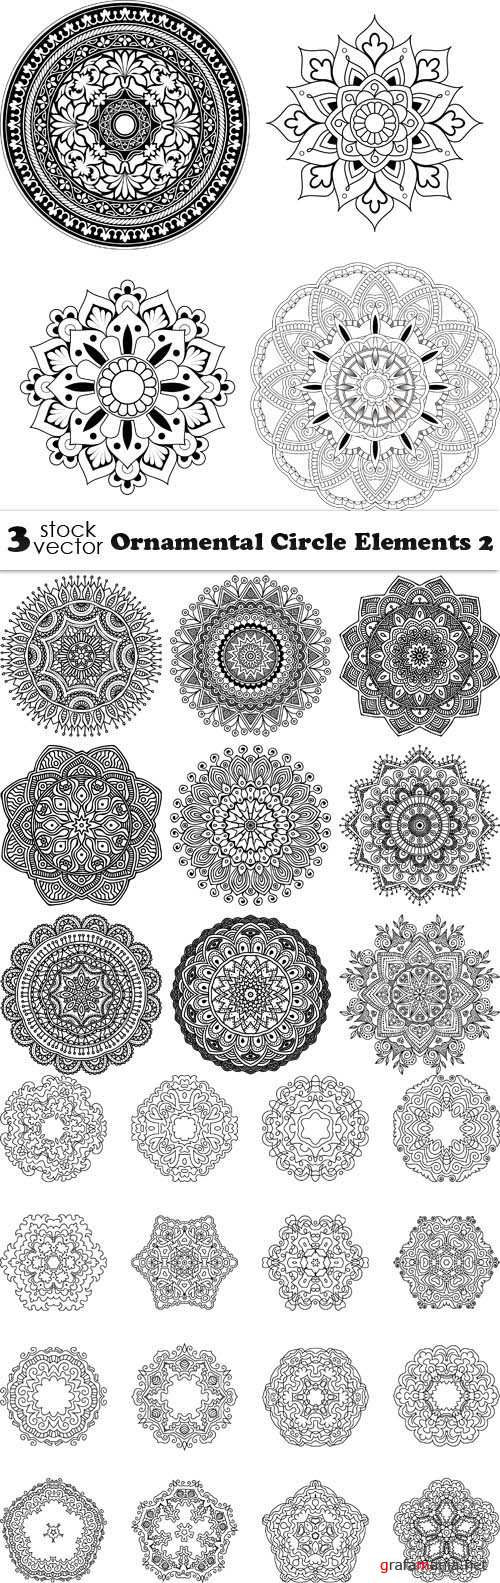 Vectors - Ornamental Circle Elements 2